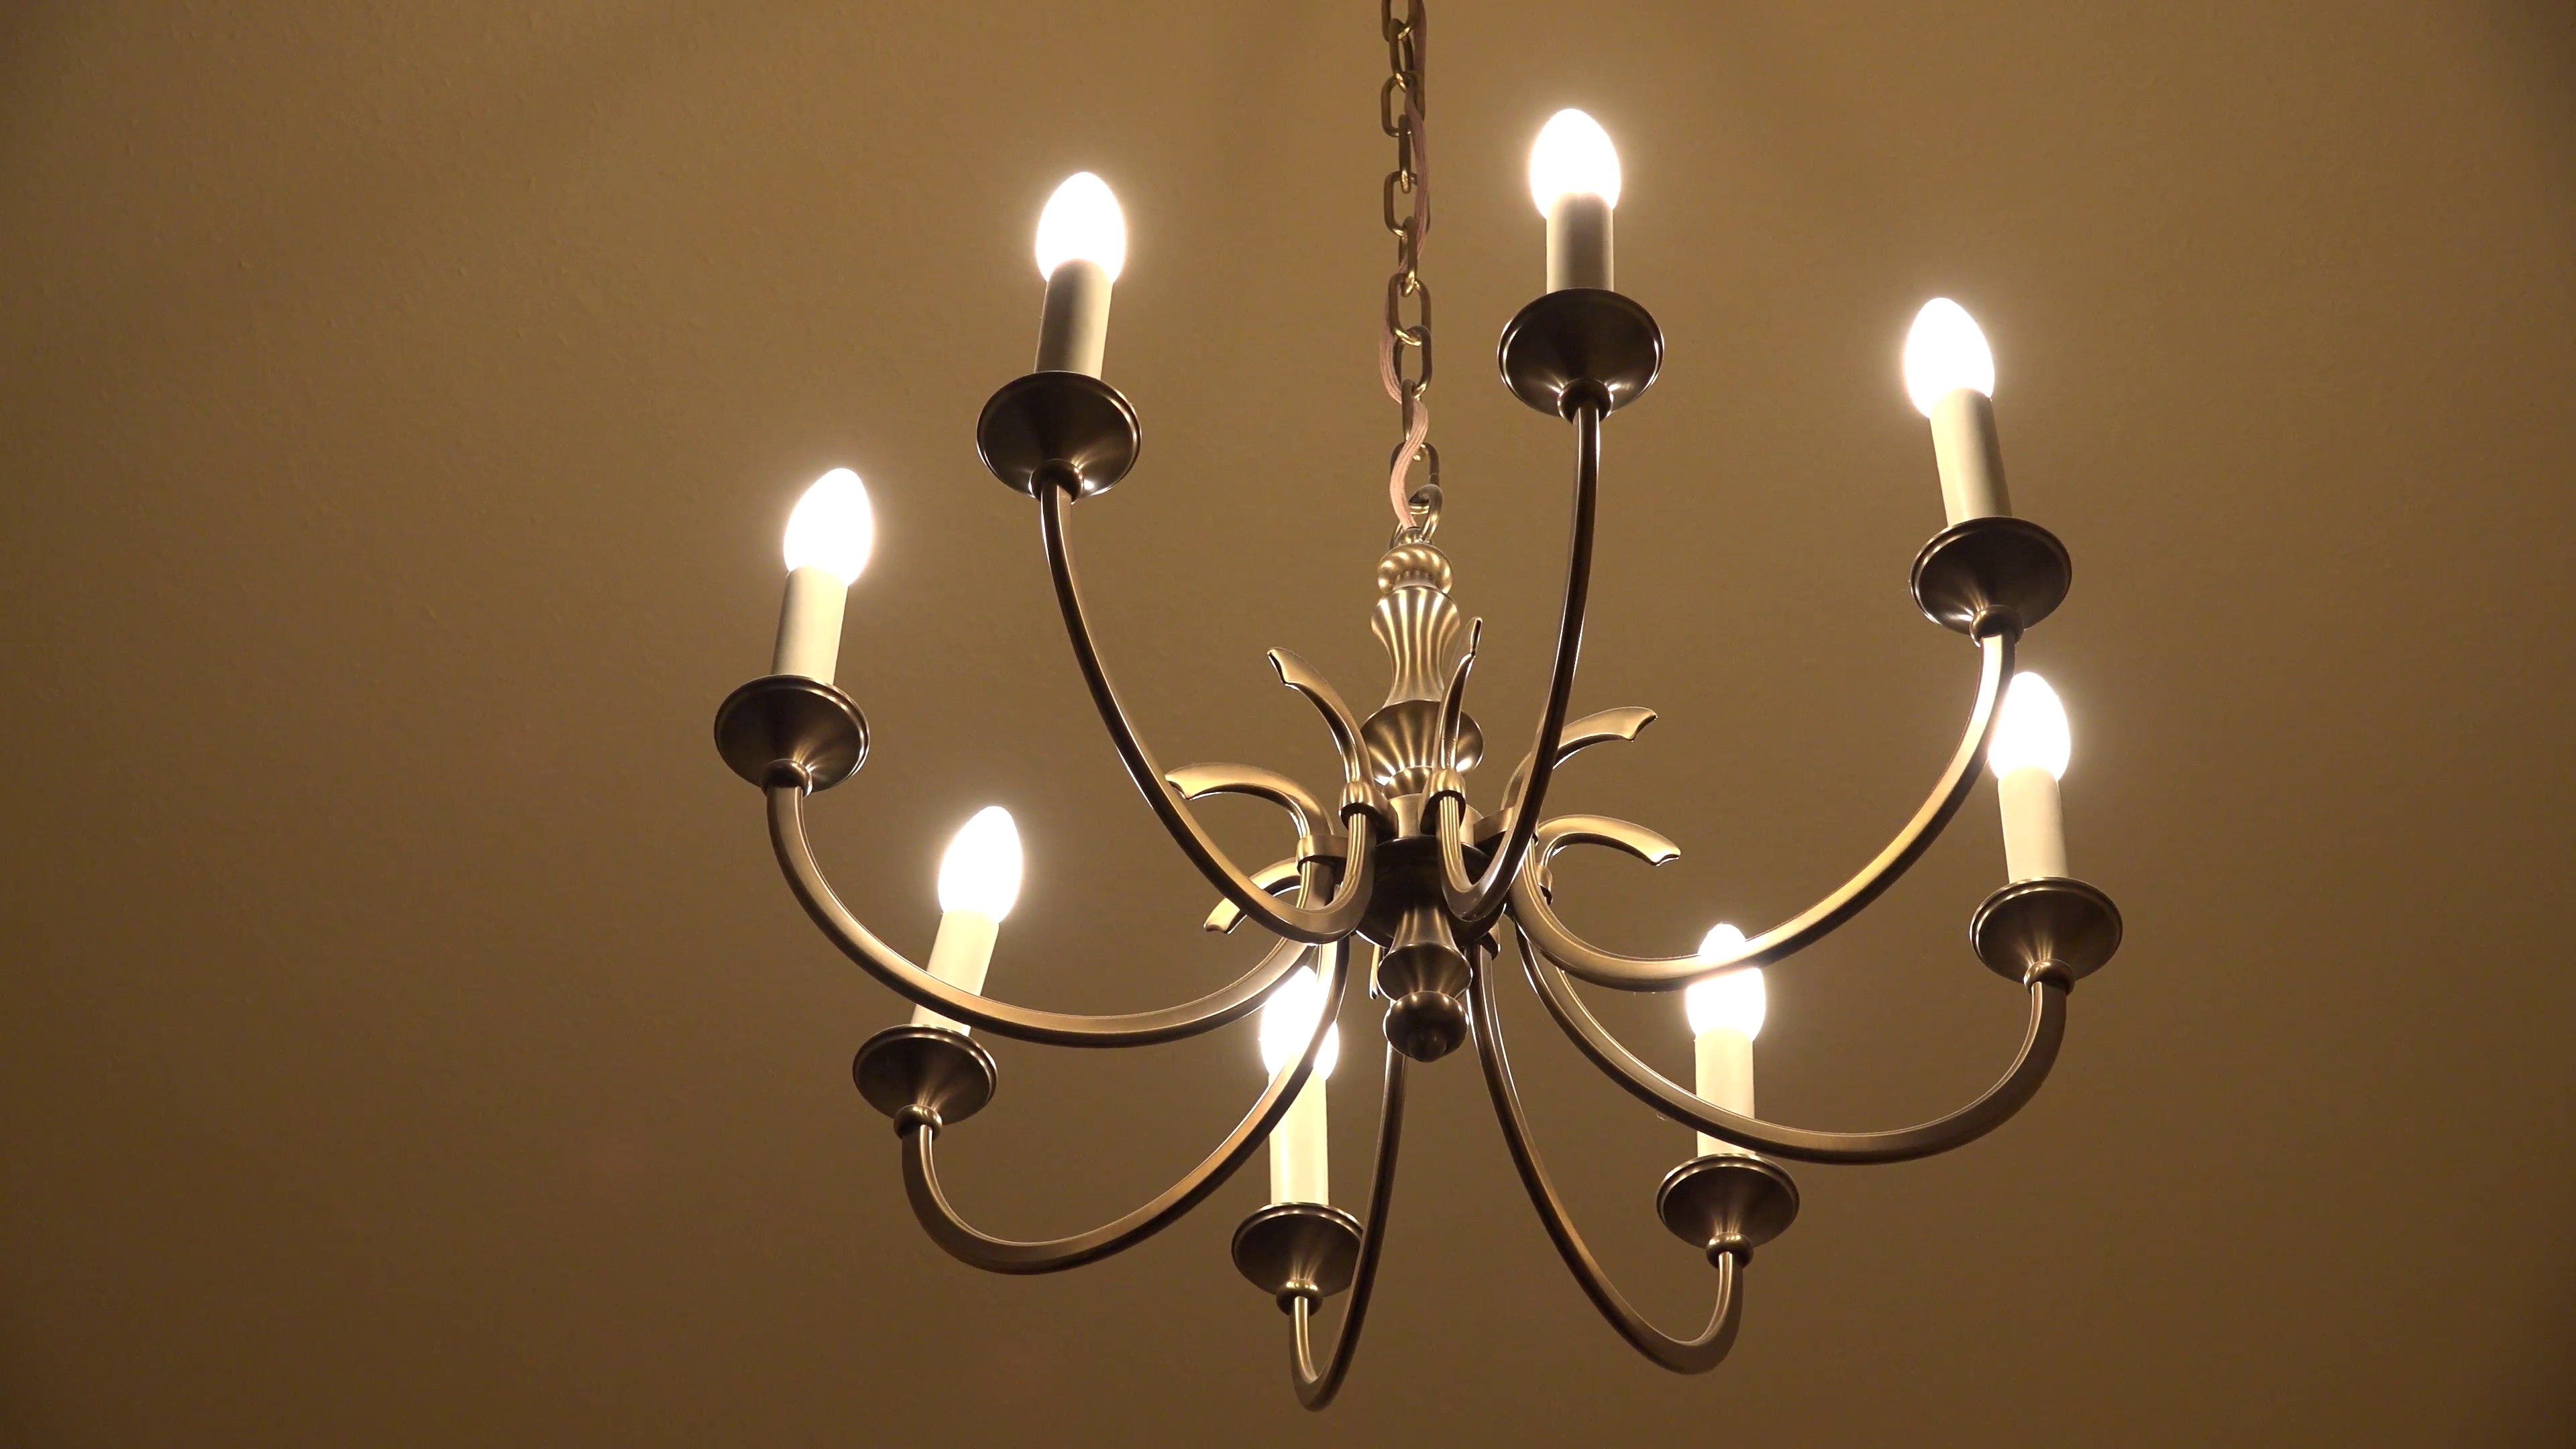 Fashionable Ultra Hd 4K Beautiful Chandelier Bulb Moving Earthquake Inside Room With Regard To Beautiful Chandelier (View 5 of 15)